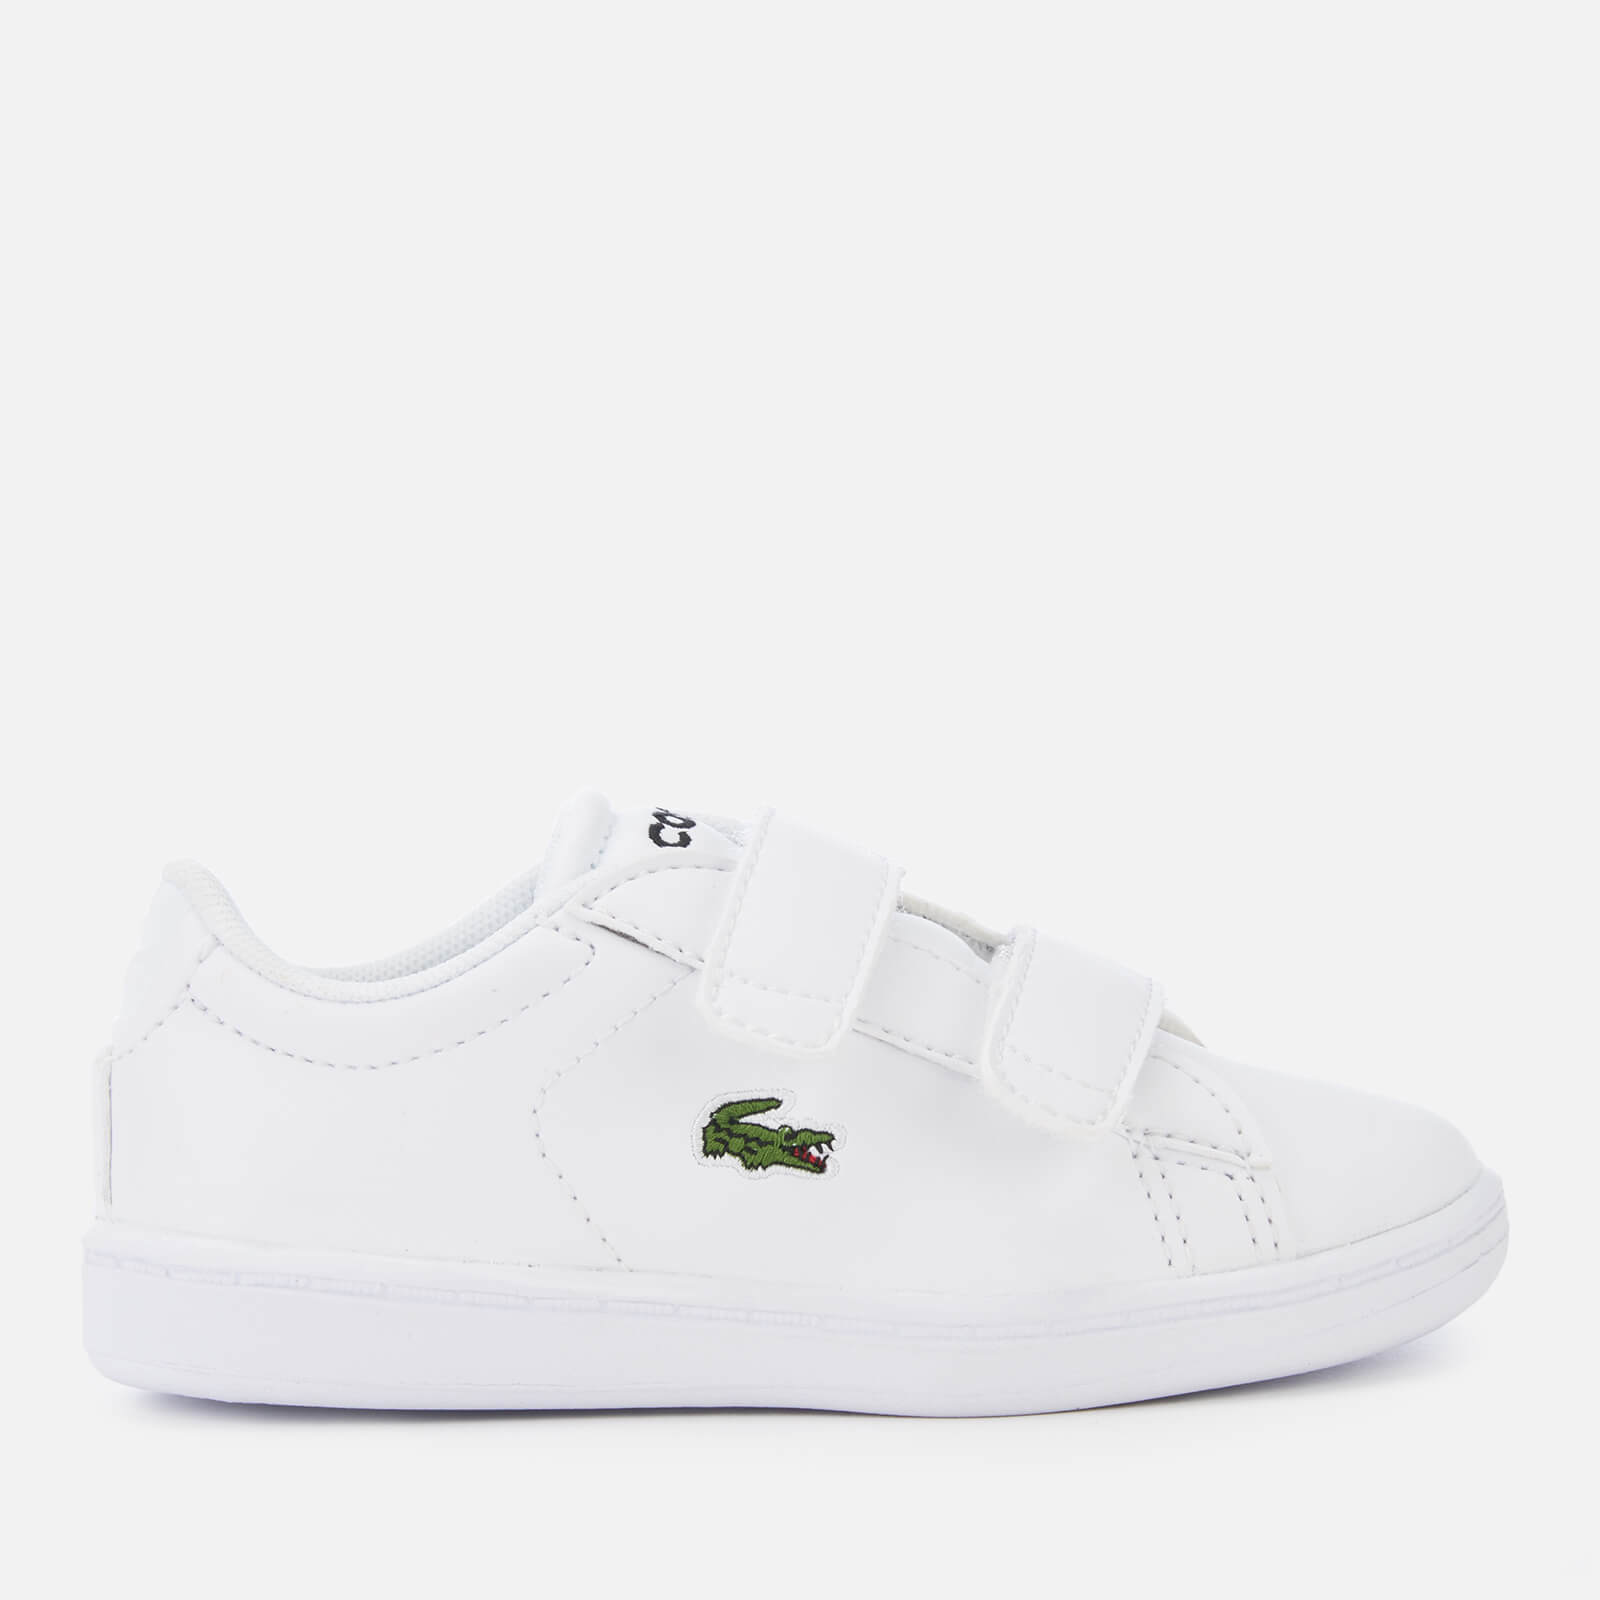 abf2e5b3a Lacoste Toddler s Carnaby Evo 119 7 Velcro Low Top Trainers - White White  Junior Clothing